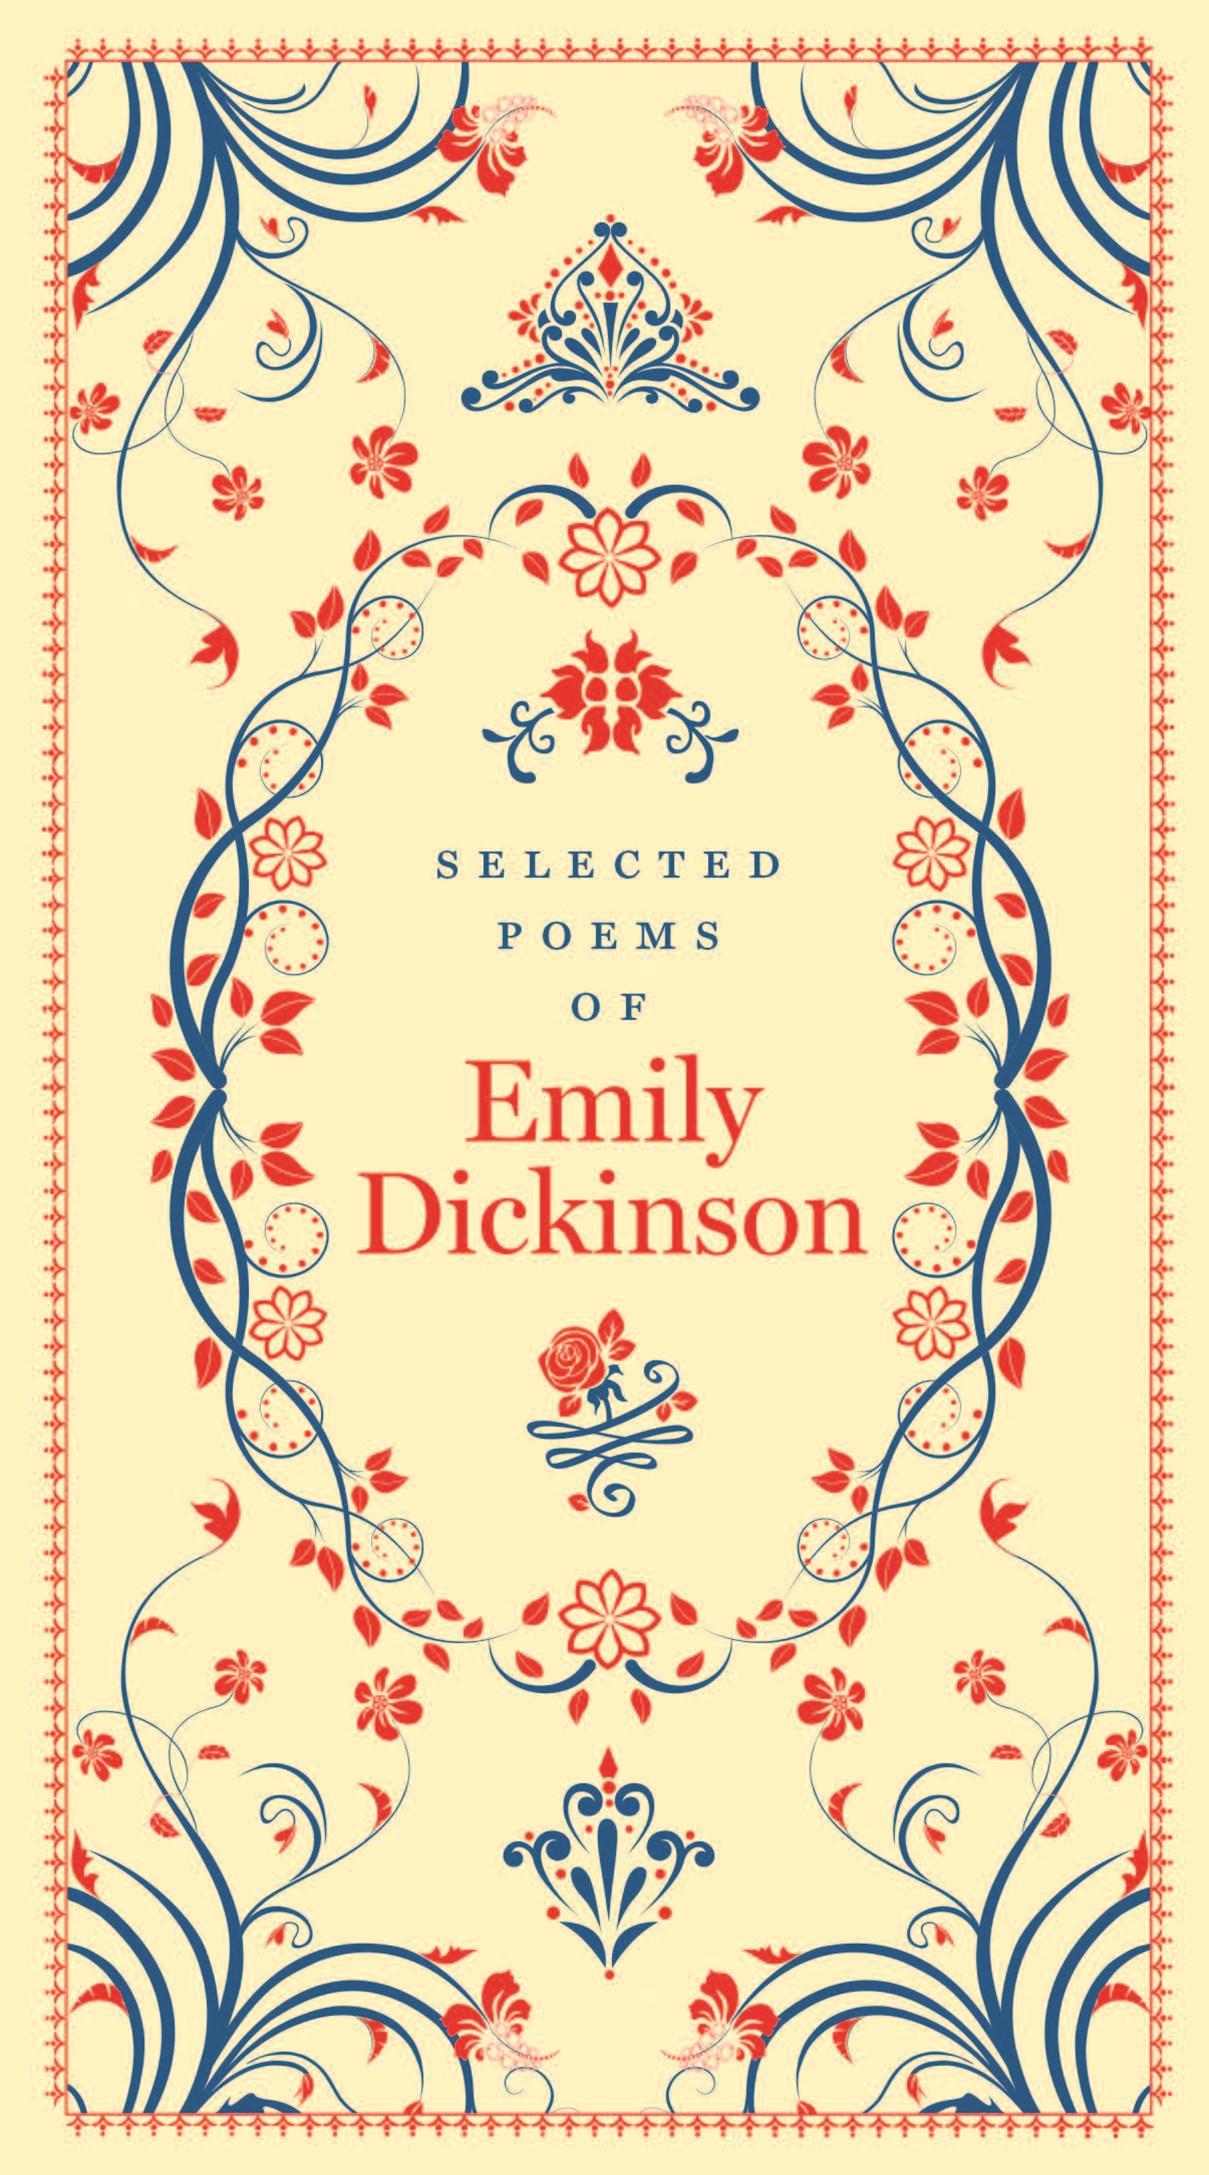 Selected Poems of Emily Dickinson (Barnes & Noble Pocket Size Leatherbound Classics)